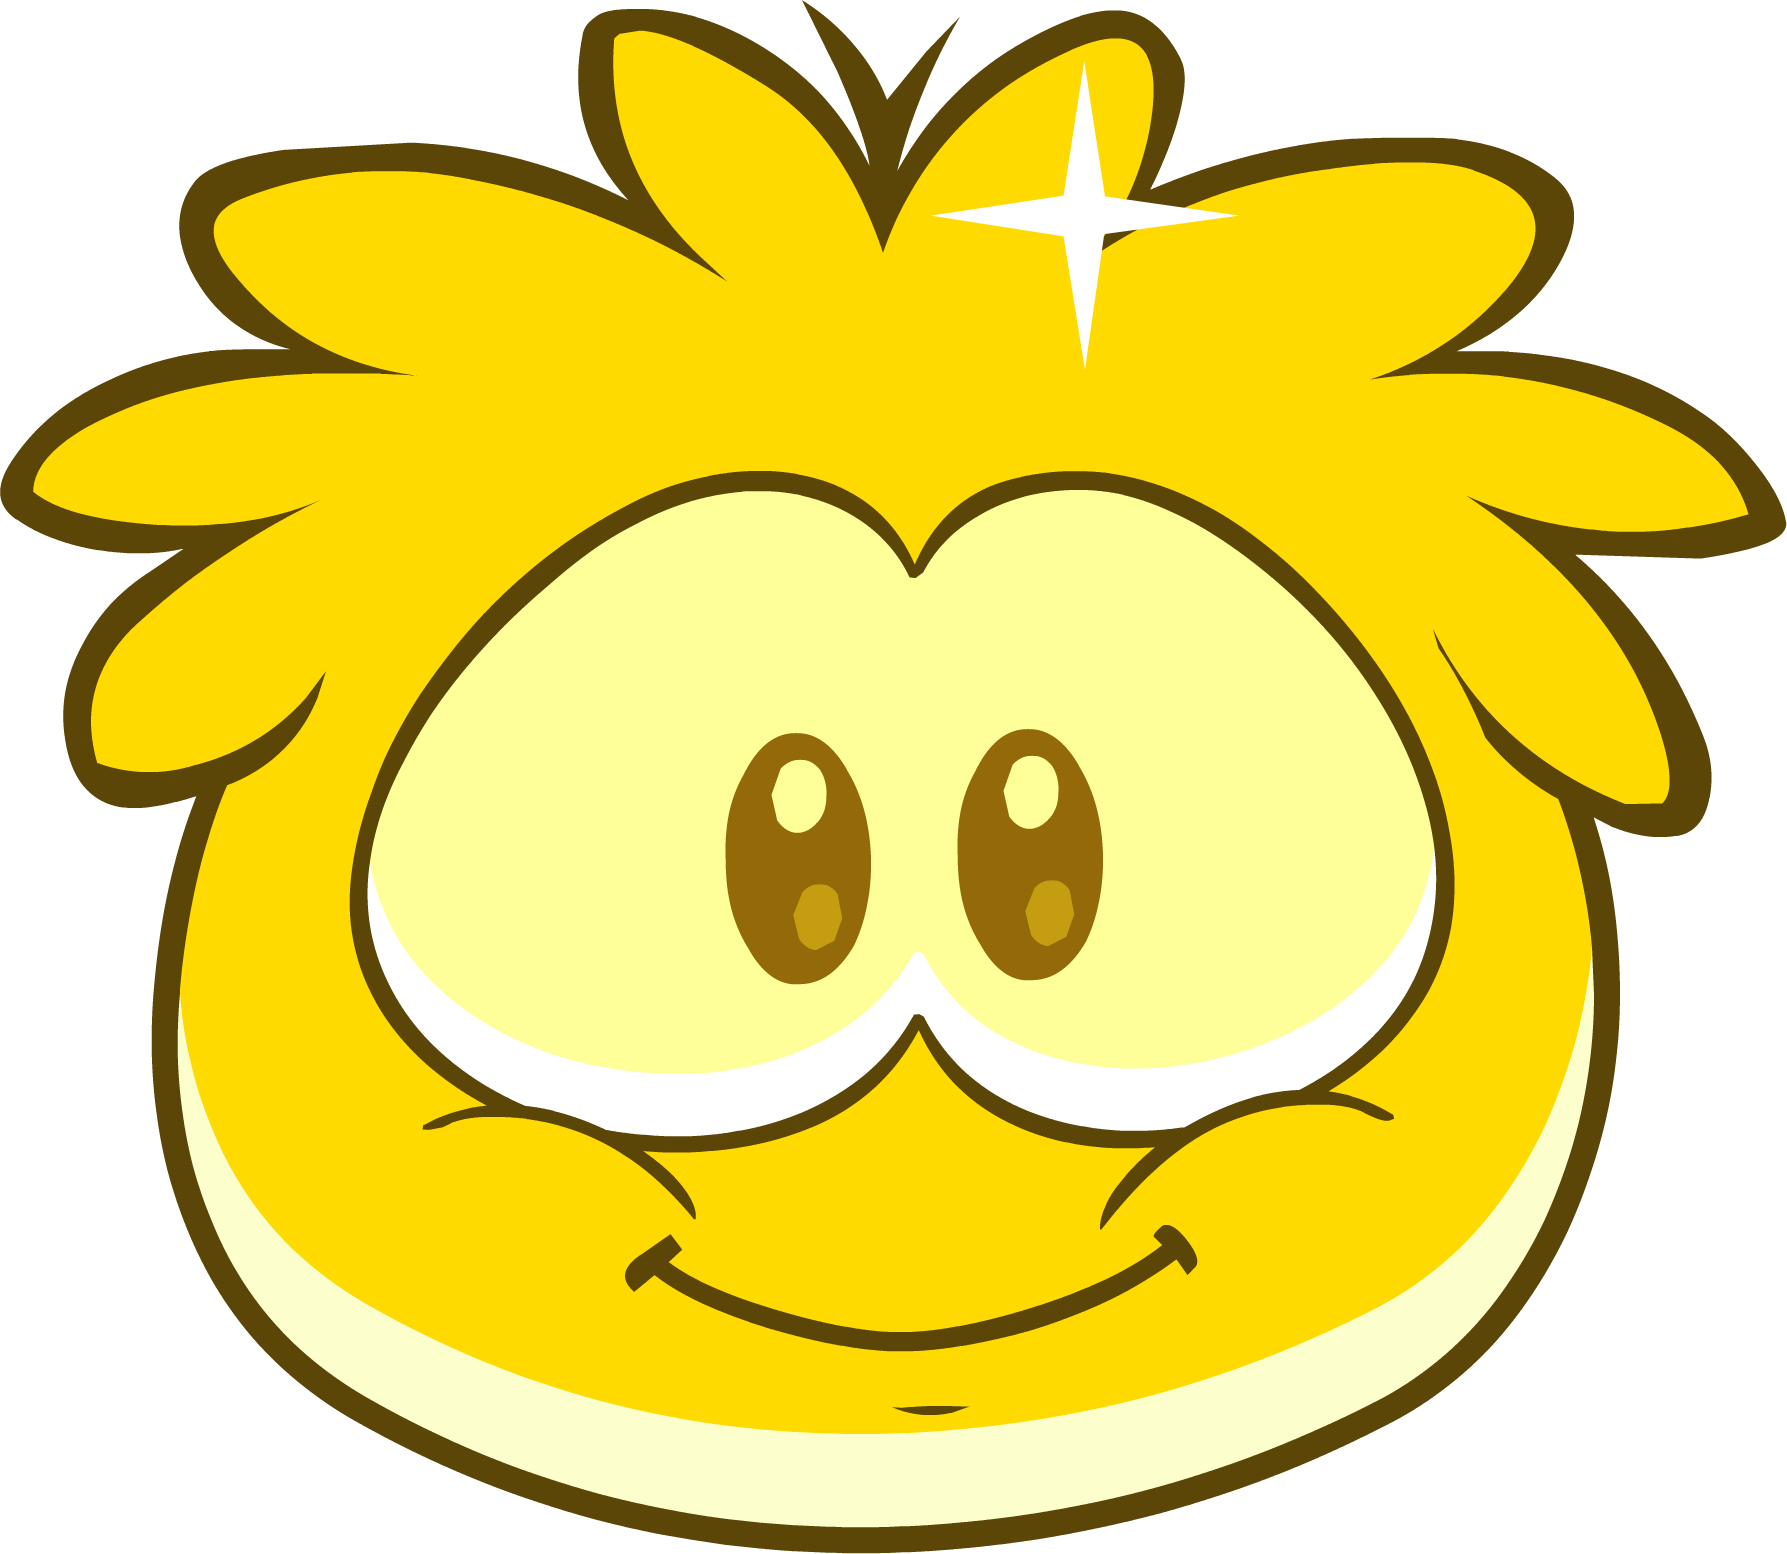 graphic freeuse download Quest for the puffle. Golden clipart gold mine